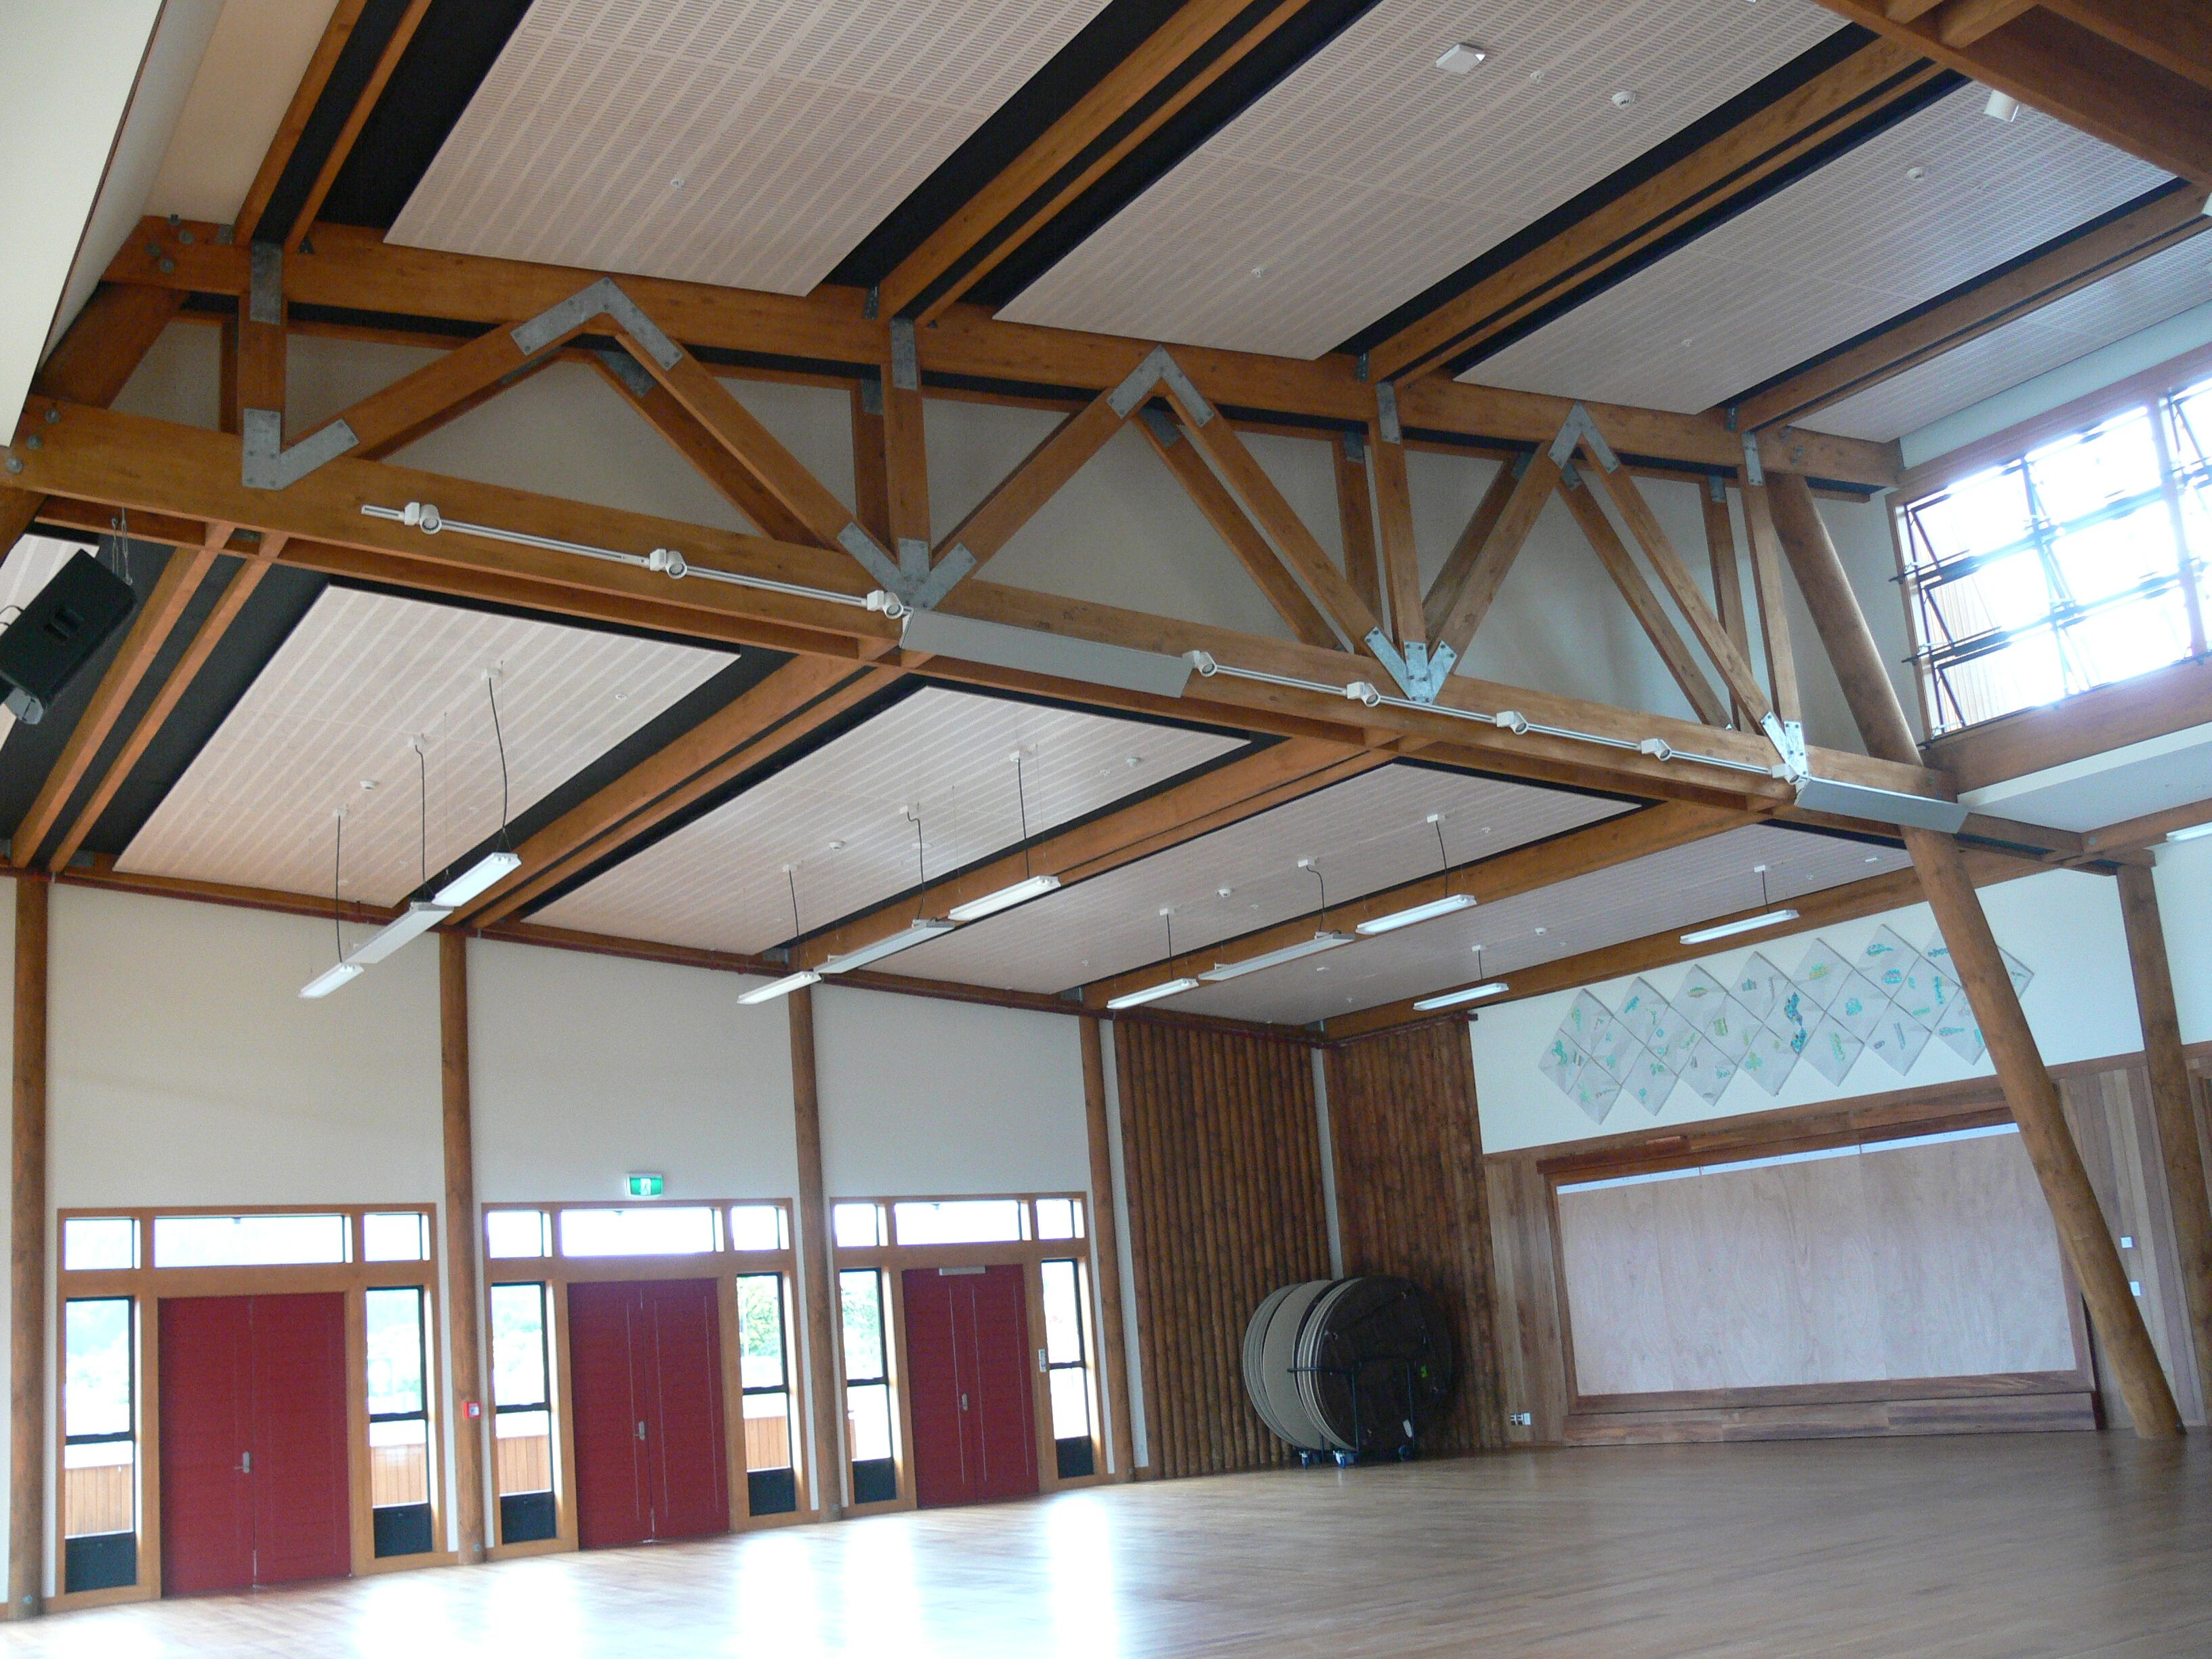 Tuhoe Living Building, Engineered Glulam trusses and